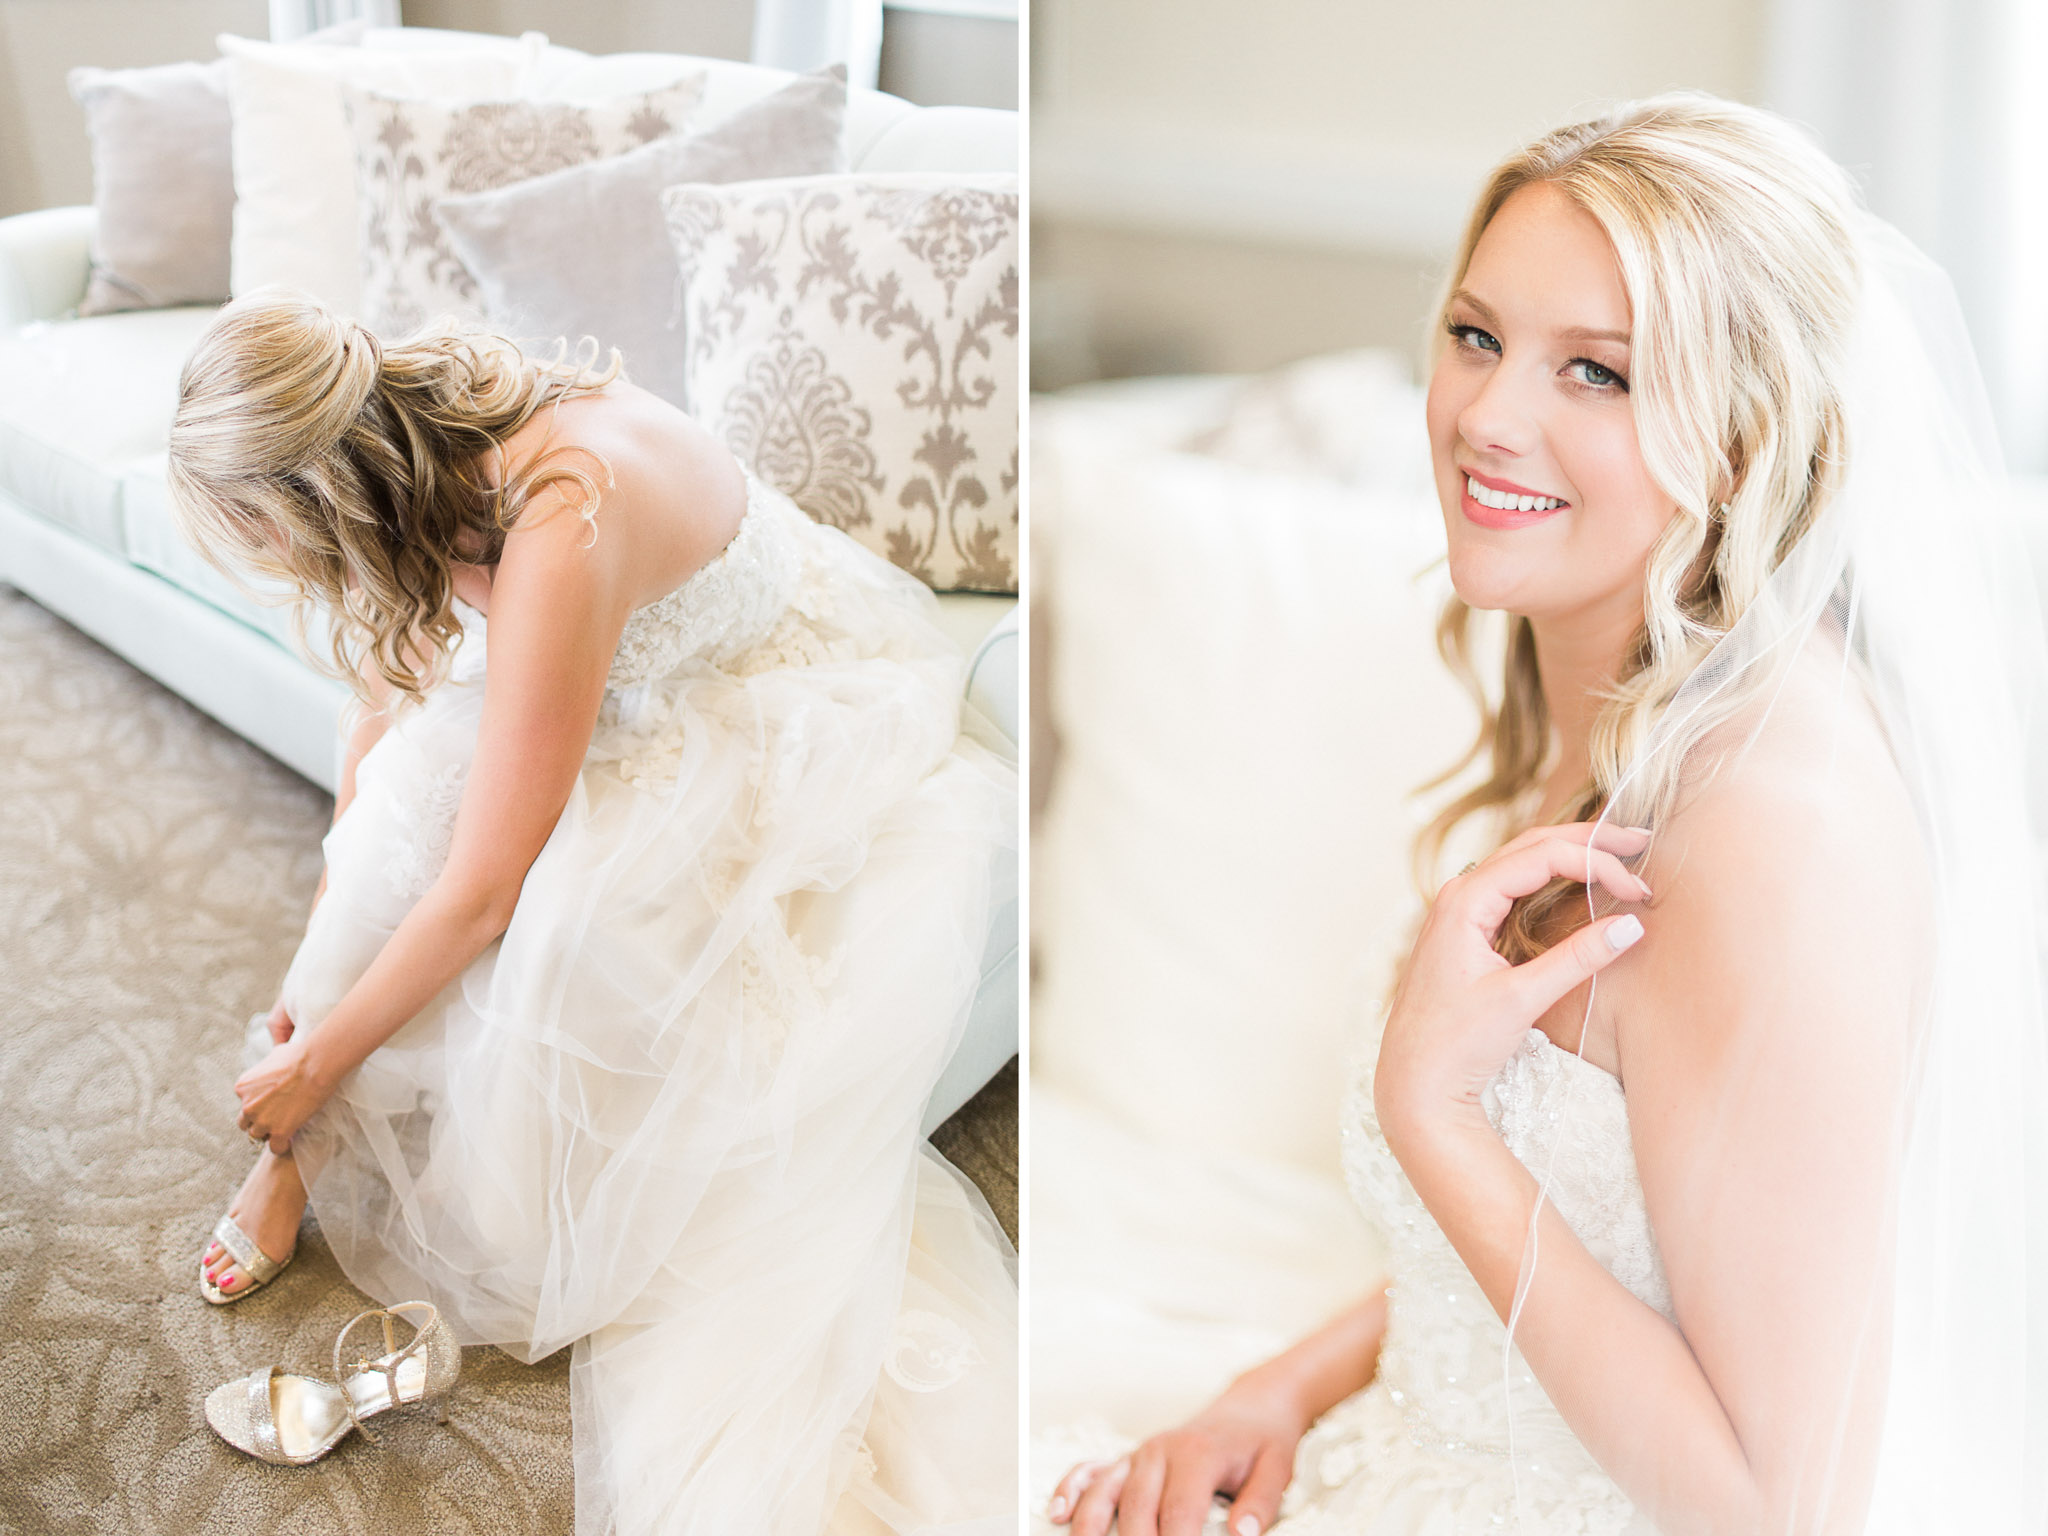 The Windsor Bridal Photos - Timeless Photography